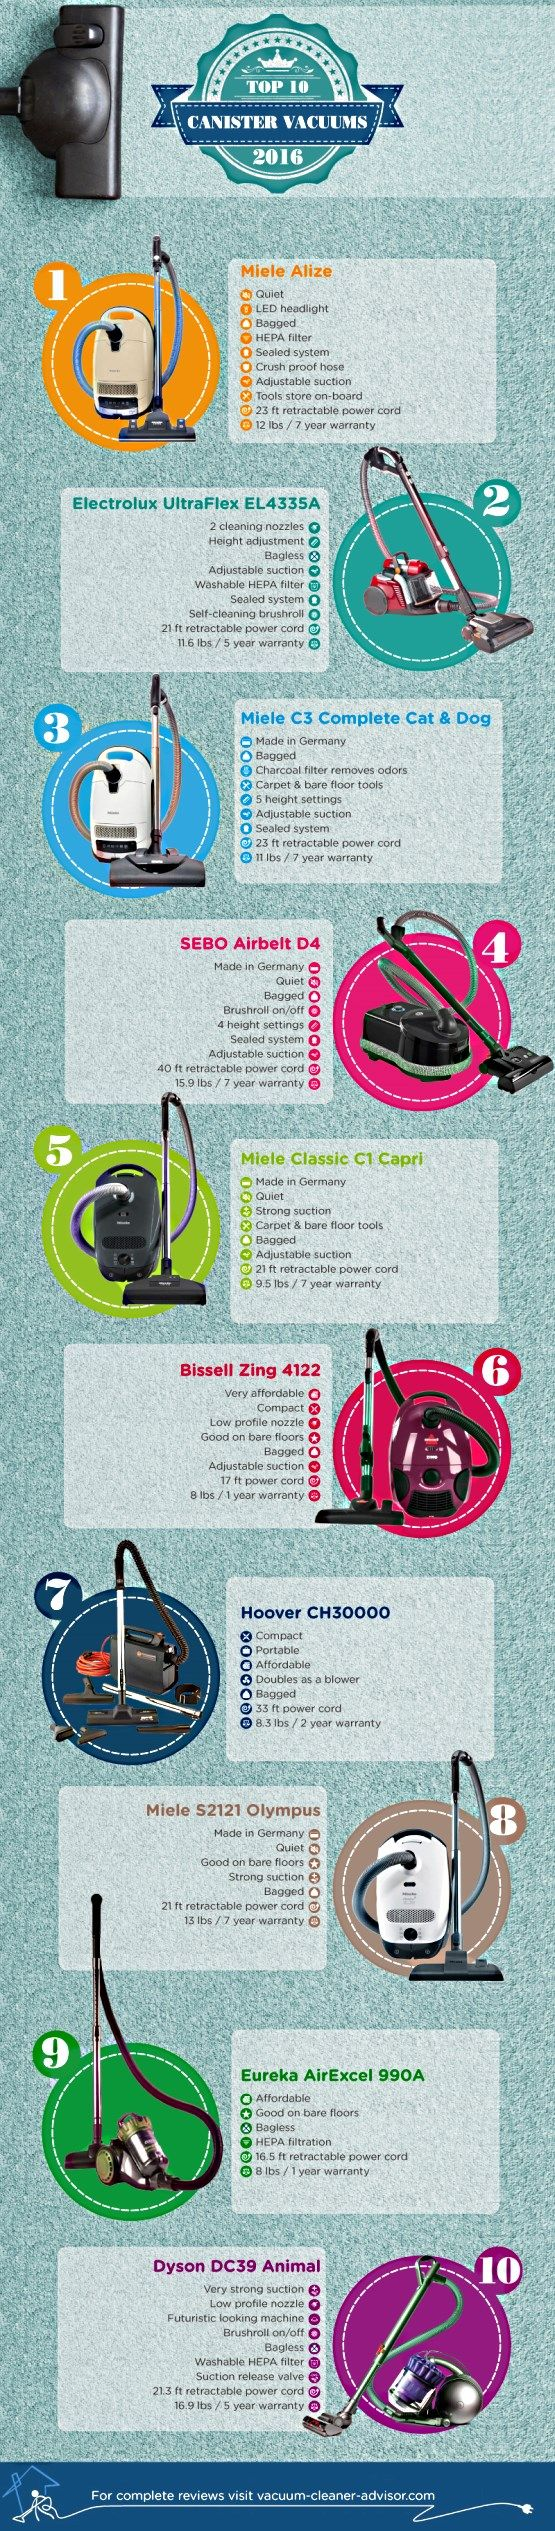 Electrolux Canister Vacuum Prices Electrolux As One Of